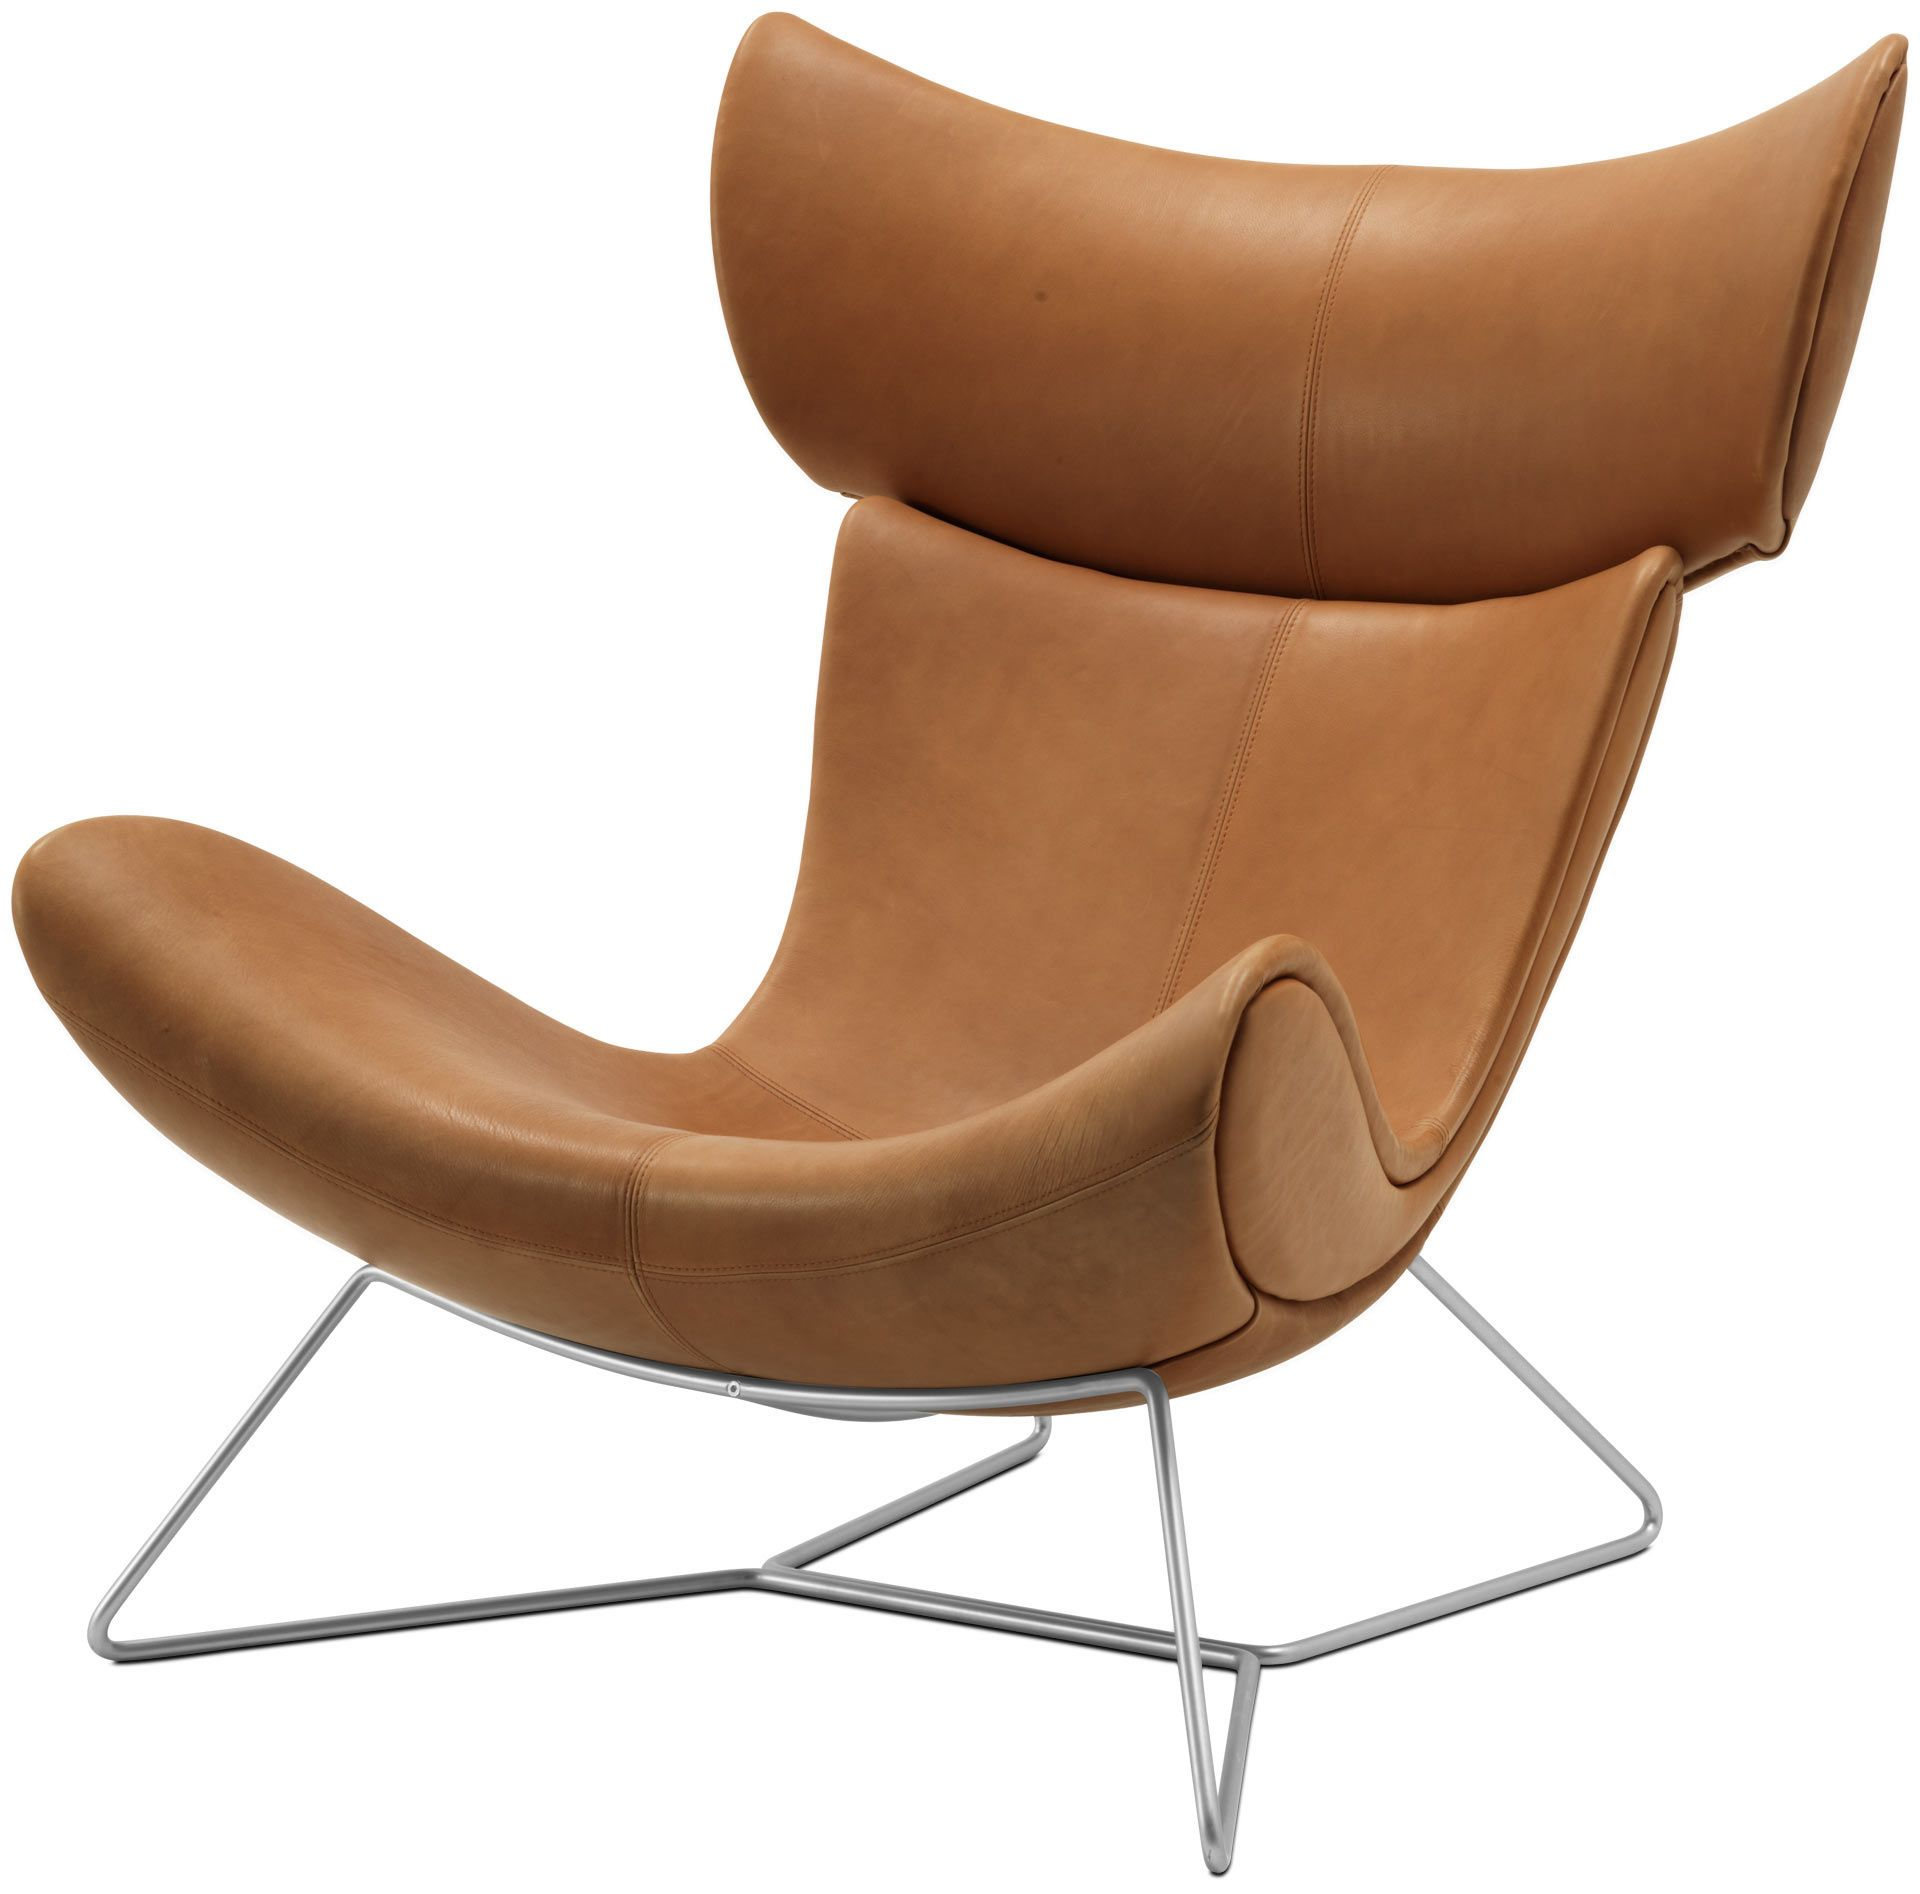 office chair alternatives eames leather and footstool boconcept imola sessel alternative feet while not